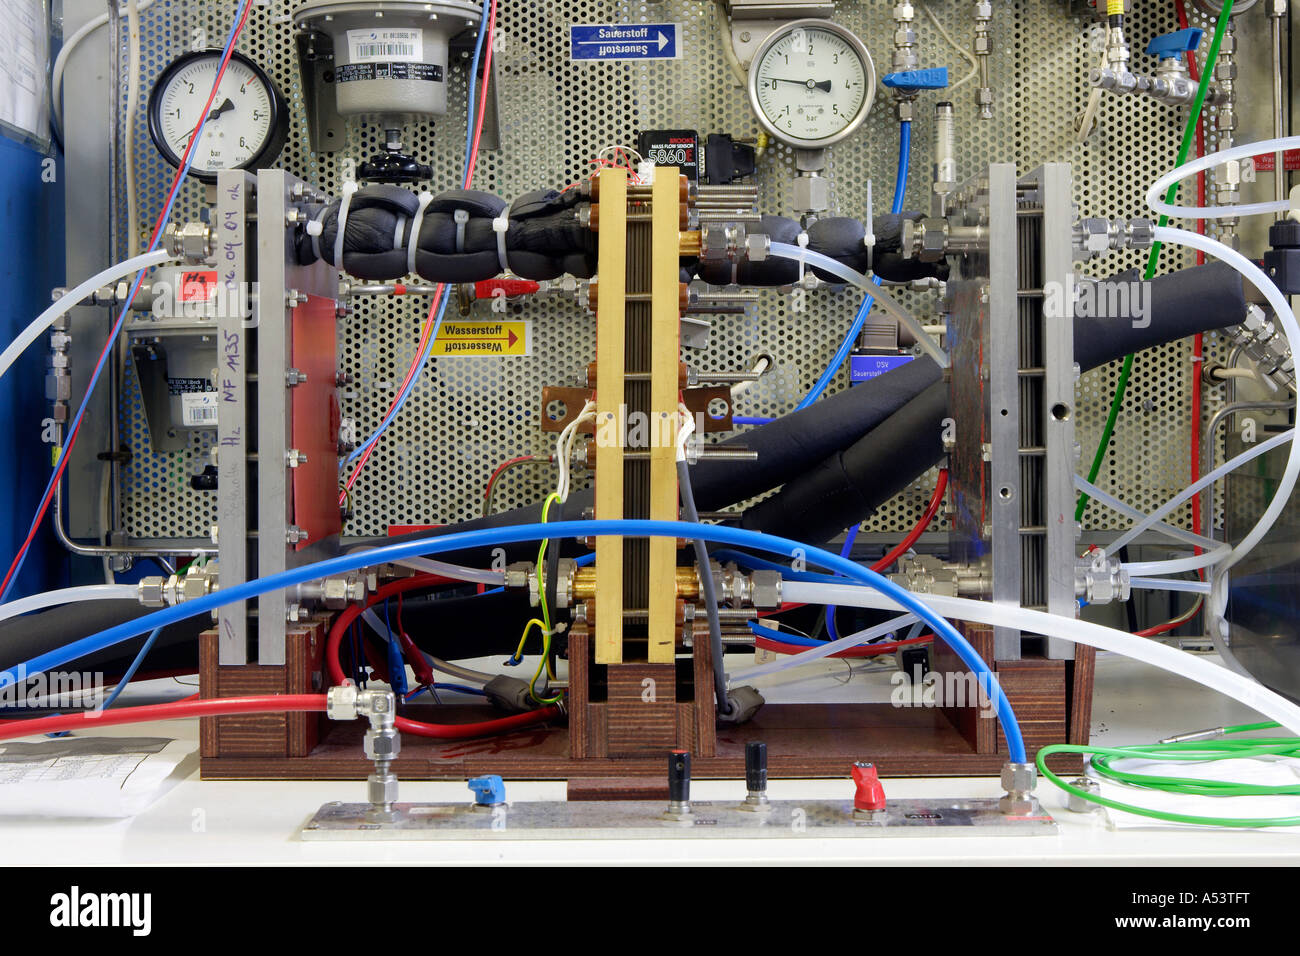 Fuel cell tests at the research center in Juelich, Germany - Stock Image